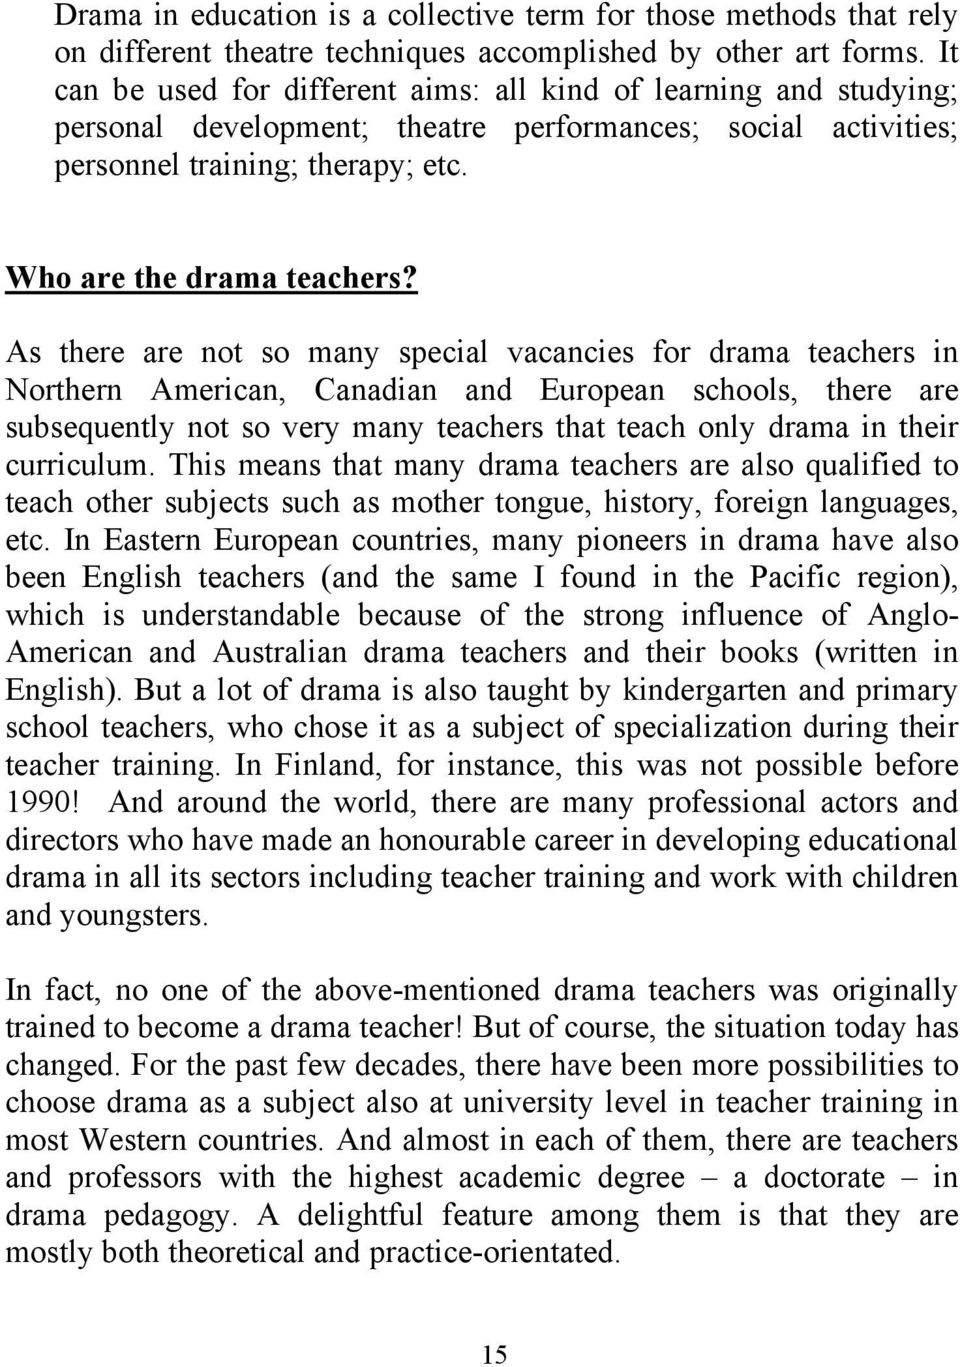 As there are not so many special vacancies for drama teachers in Northern American, Canadian and European schools, there are subsequently not so very many teachers that teach only drama in their